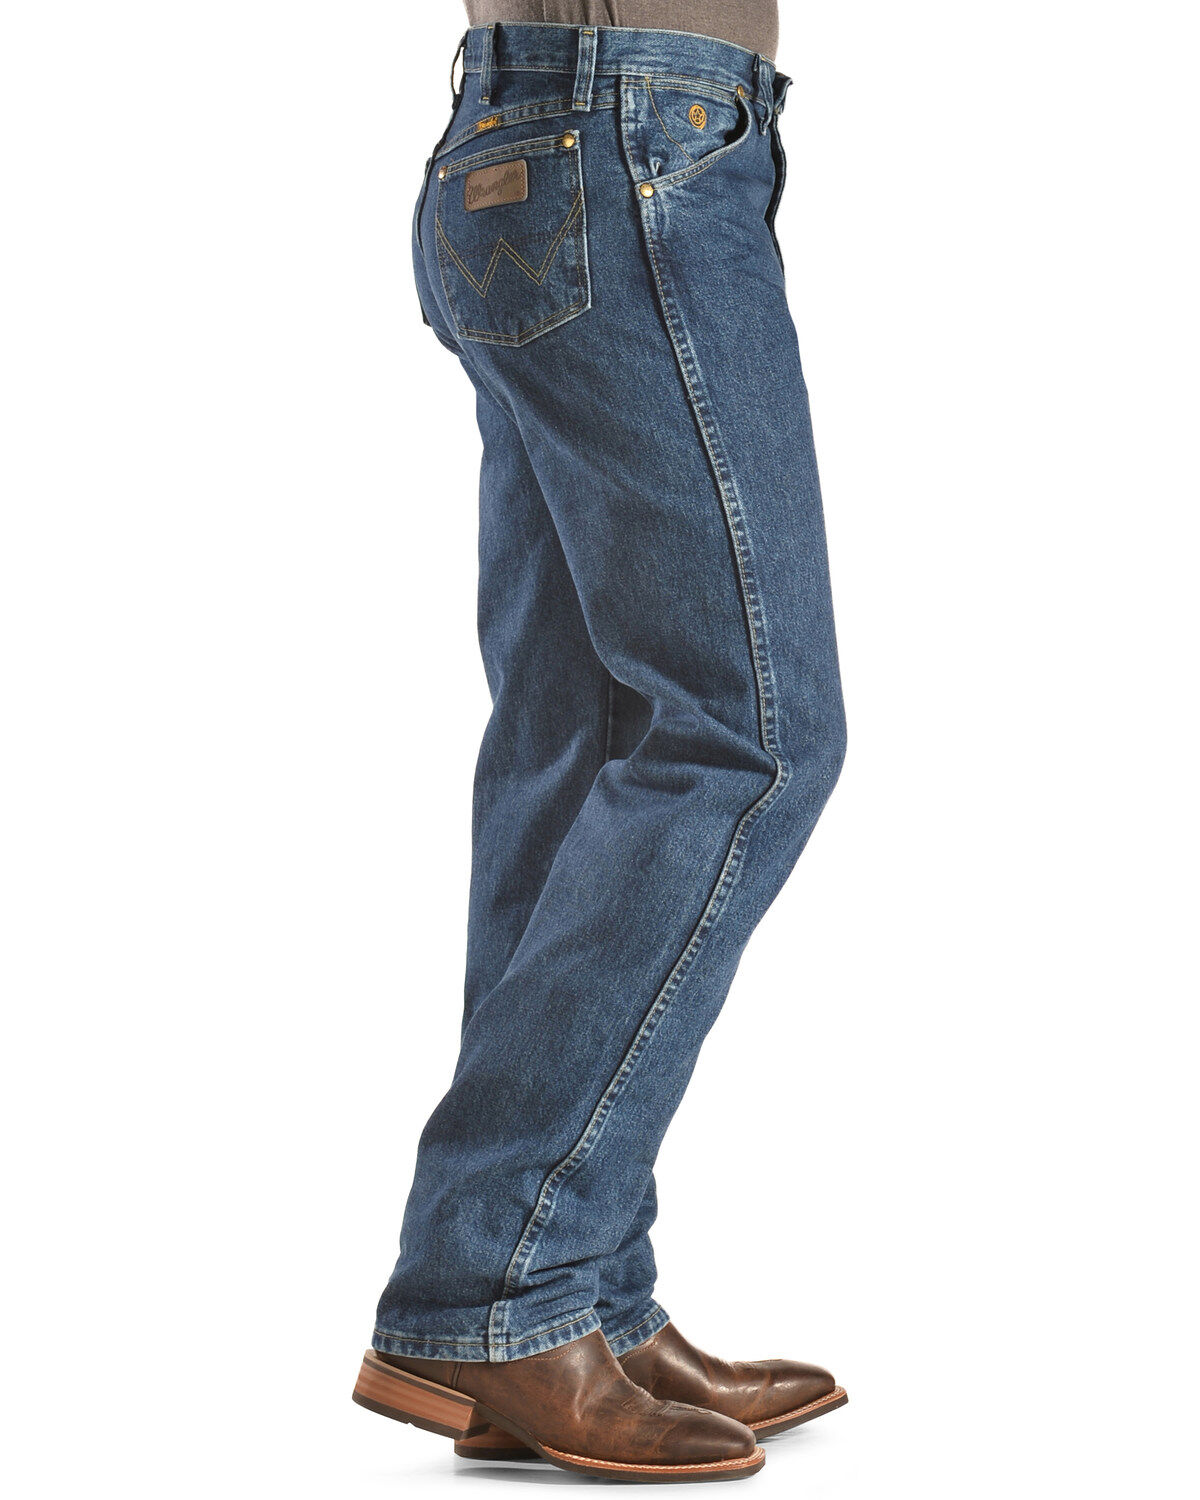 Mens Strait Cowboy Cut Original Fit Jean Comfy Stretch Skinny Denim Jeans Work Pants